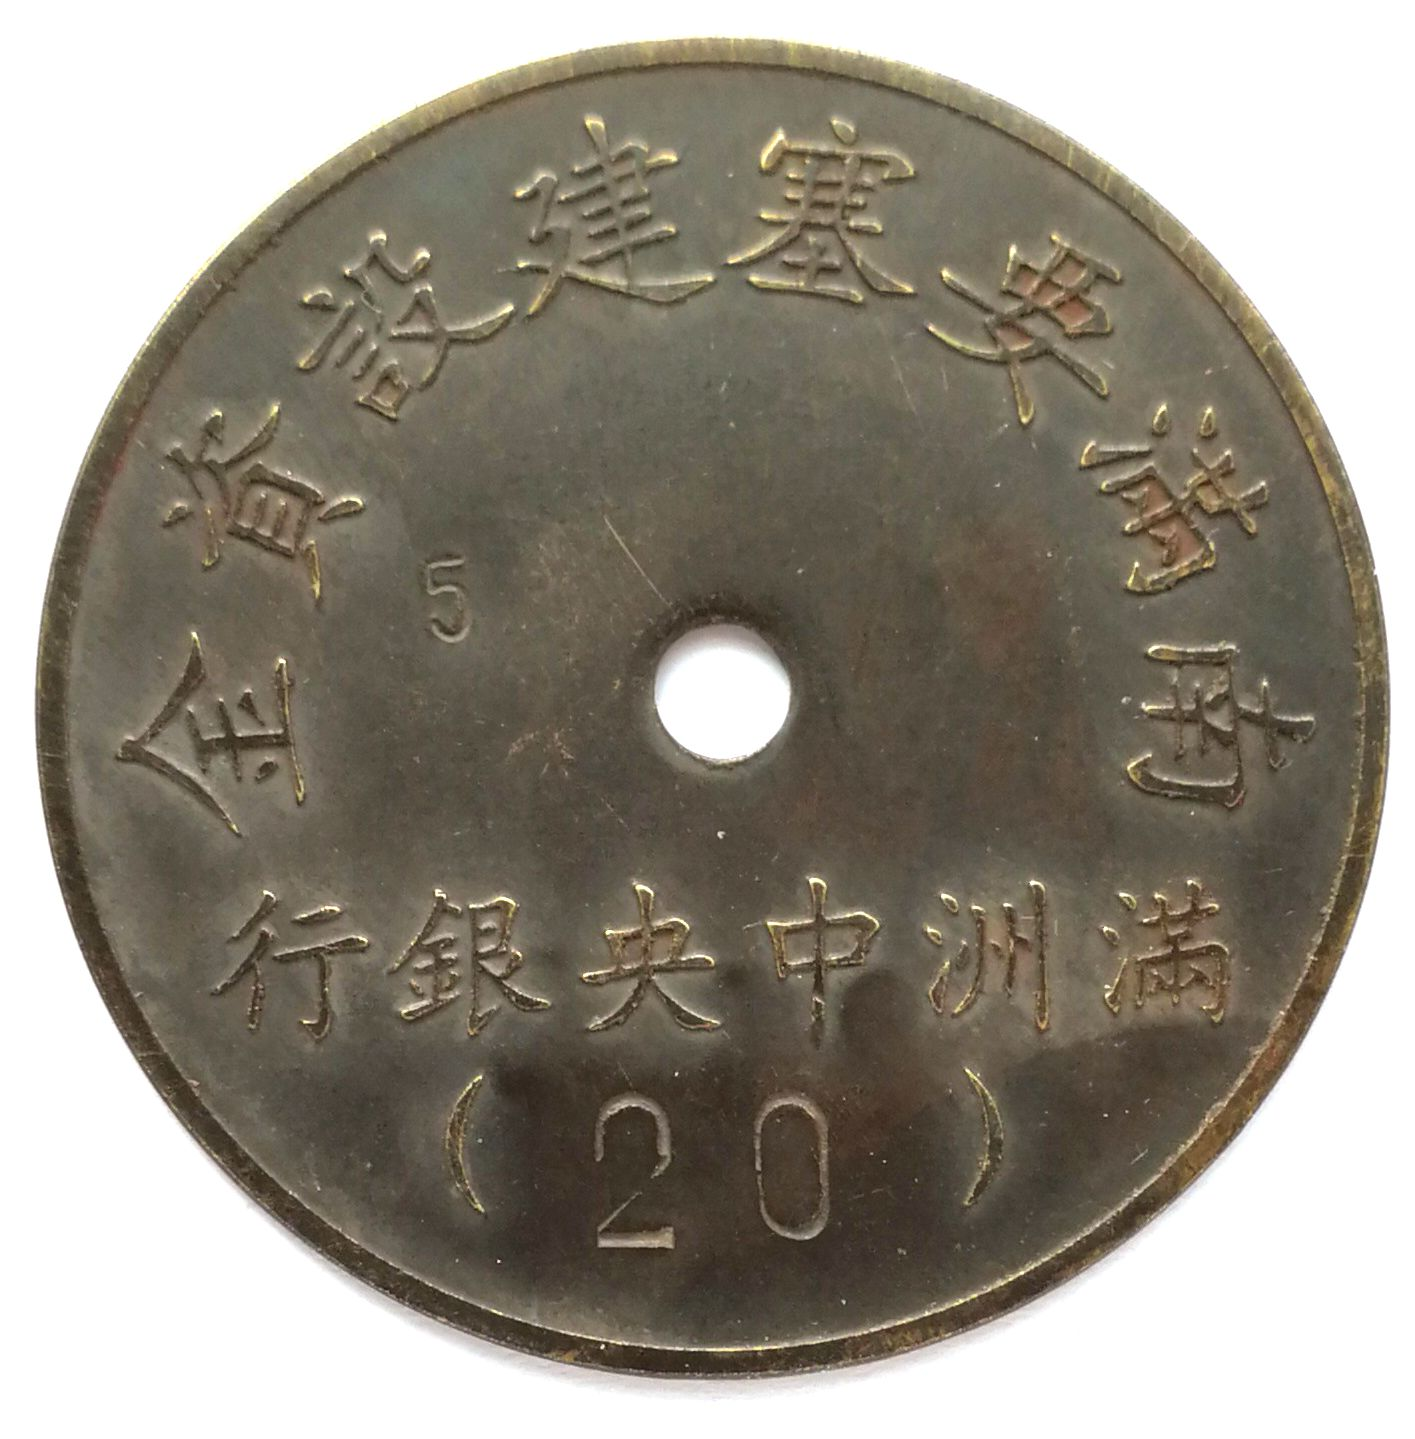 BT480, South Manchukuo Fortresses Construction Fund, 20 Yen Token, 1944